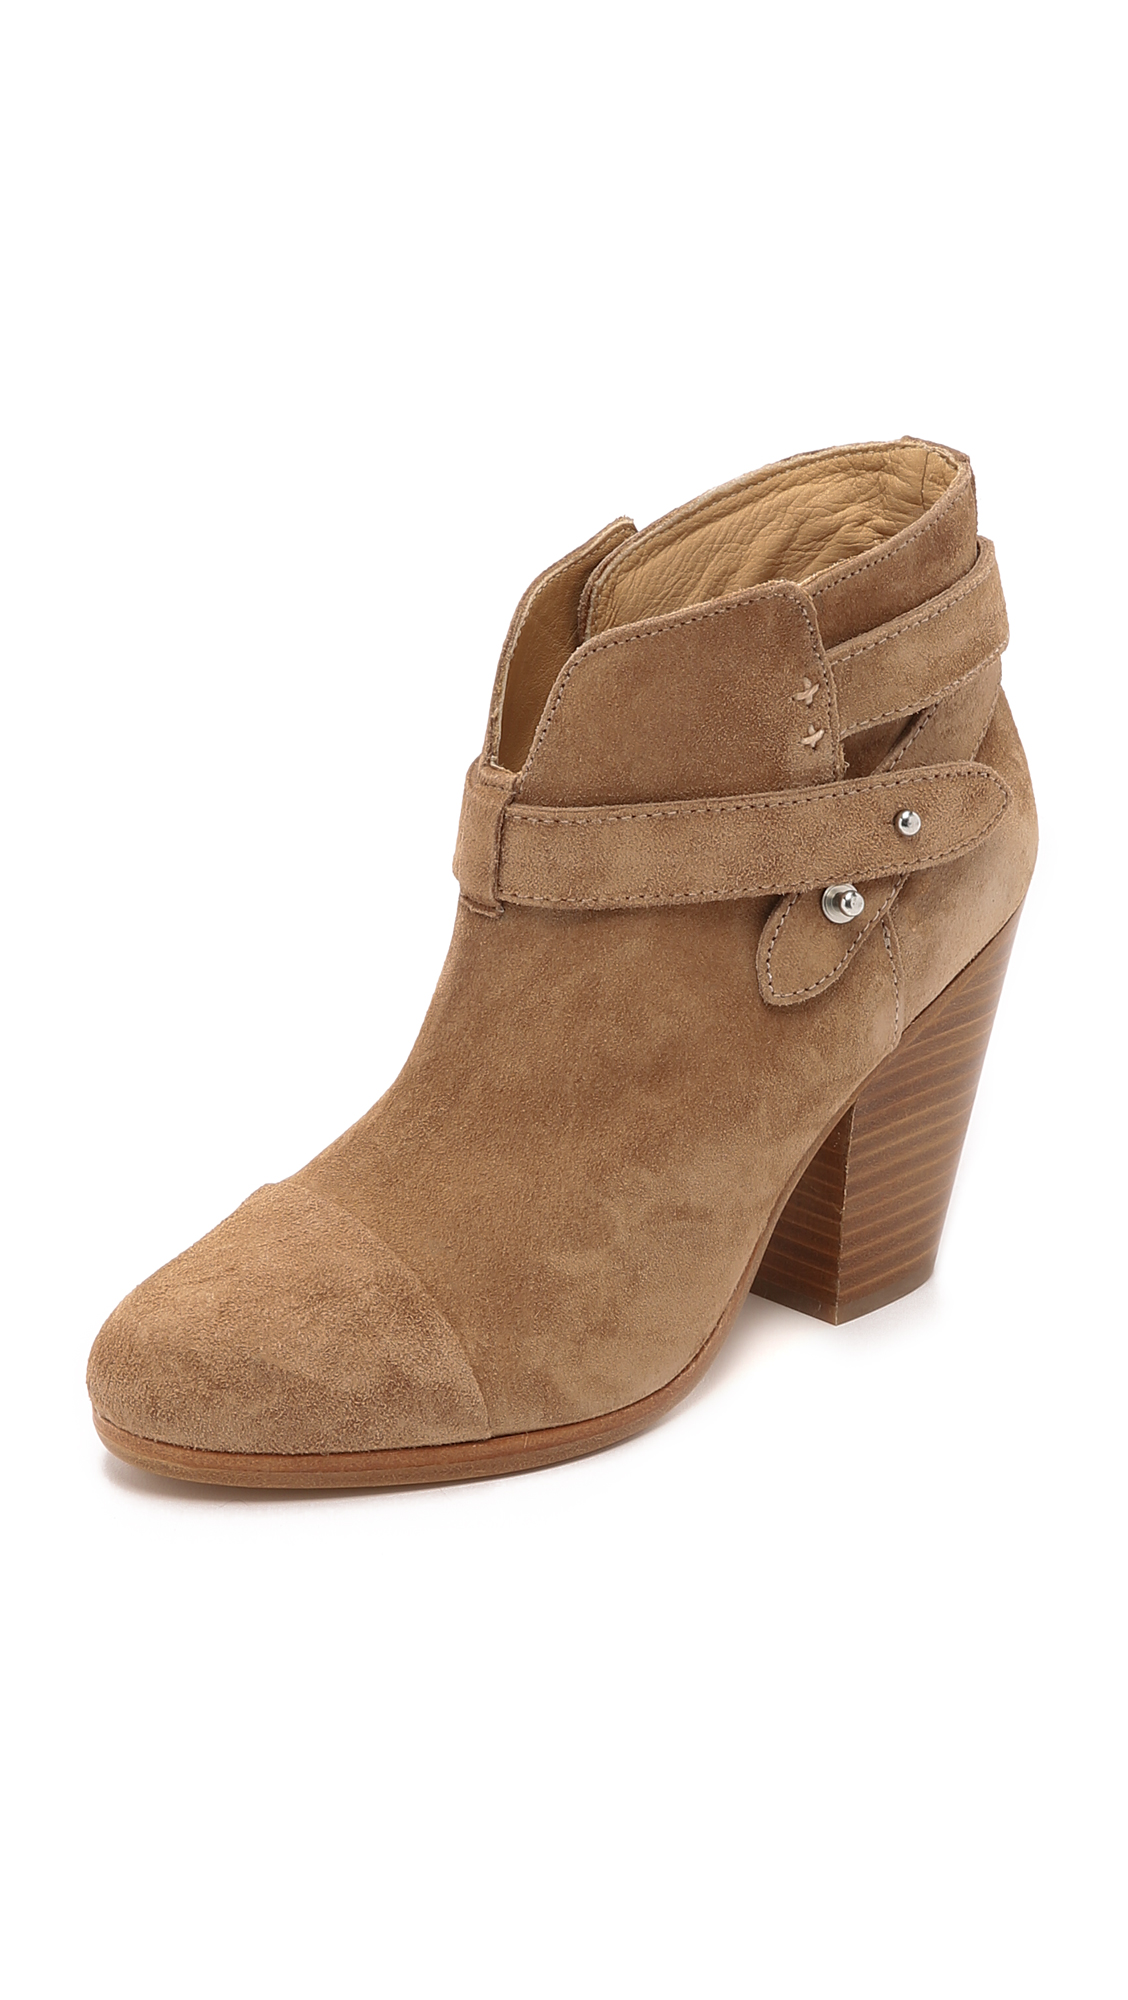 Rag & Bone Harrow Booties - Camel